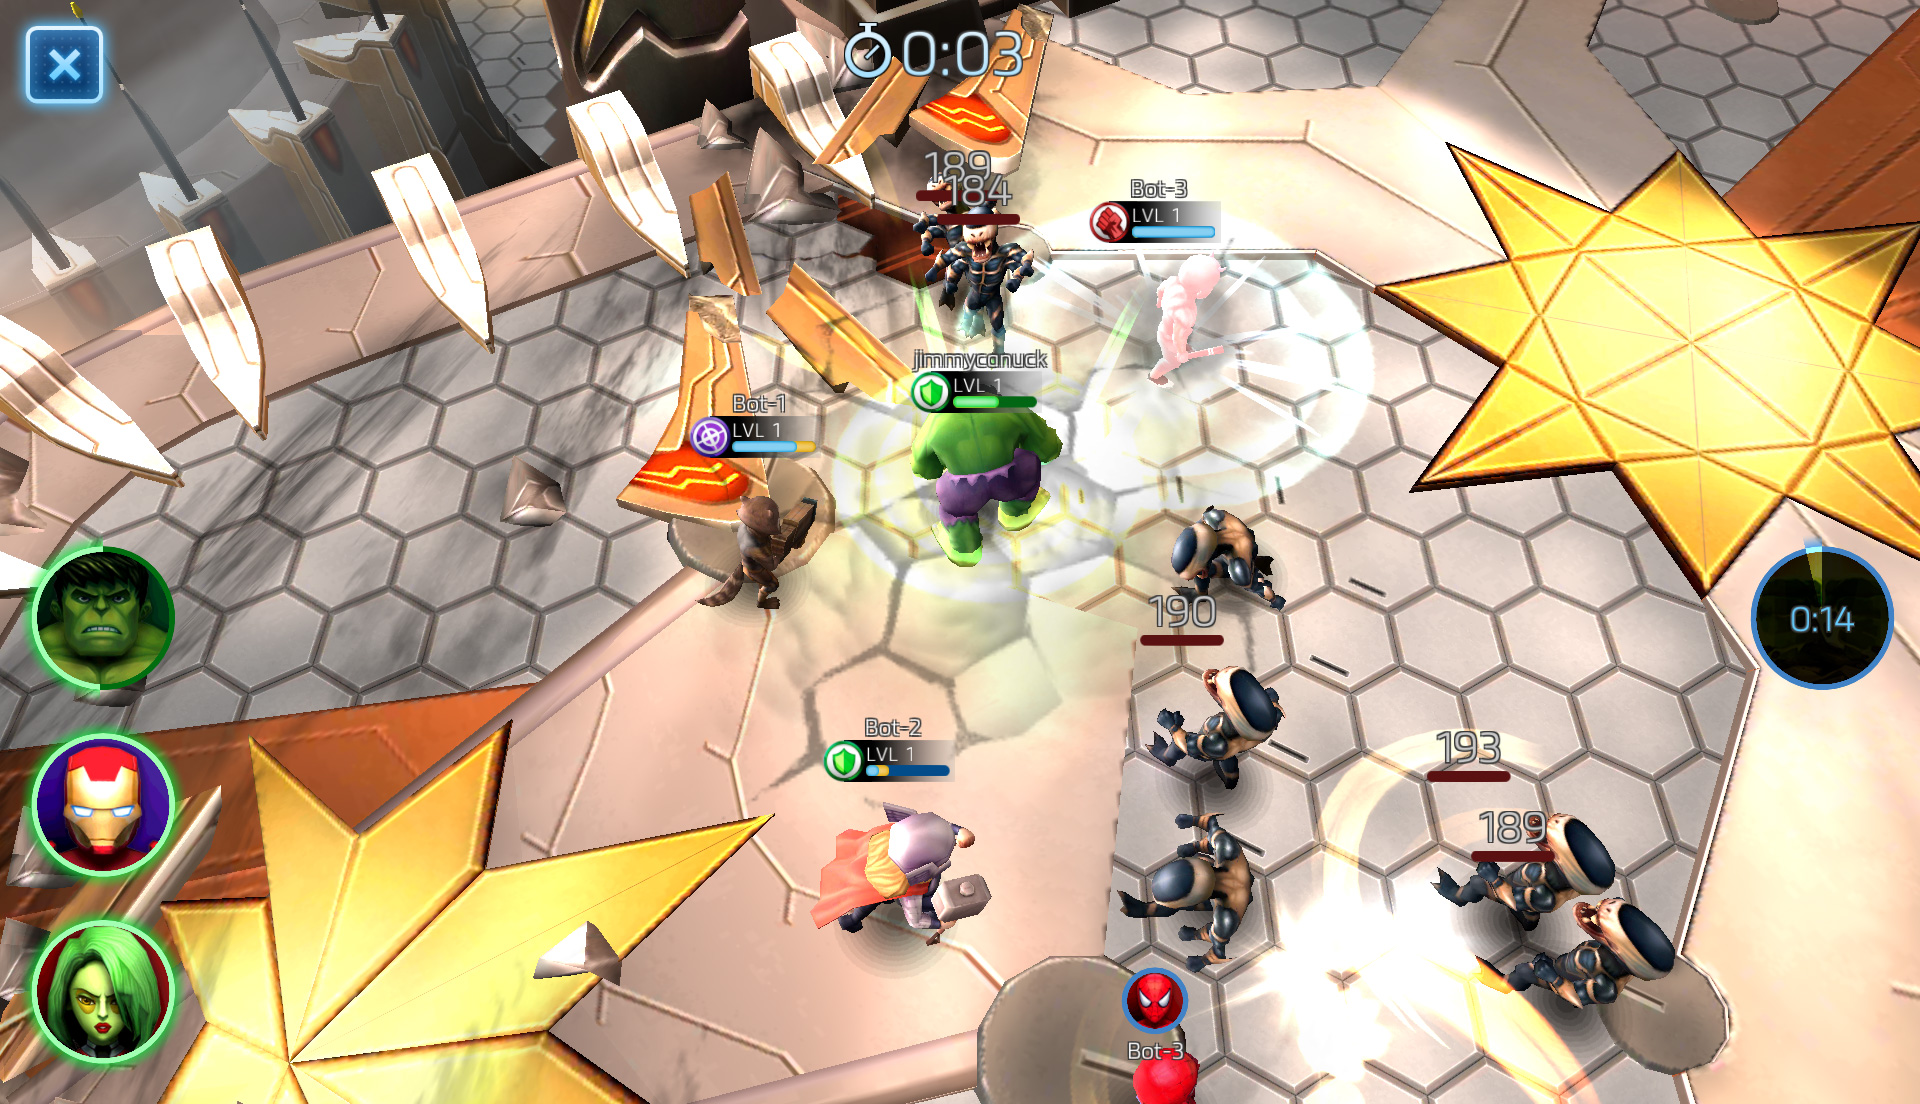 Marvel-Mighty-Heroes-Dena-Corp.-ios-Action-iphone-ipad-tipps-tricks-cheats-android-ios-windows-apps-hack-spiel-game-03